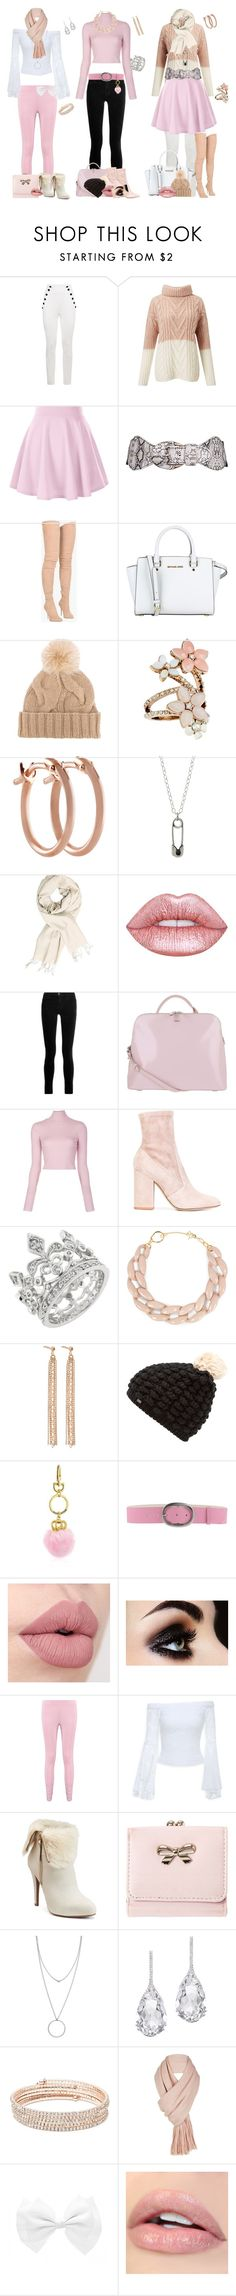 """light pink with white and black"" by svetlozeme ❤ liked on Polyvore featuring Tommy Hilfiger, Miss Selfridge, Balmain, MICHAEL Michael Kors, Loro Piana, Accessorize, Pori, Lime Crime, J Brand and Radley"